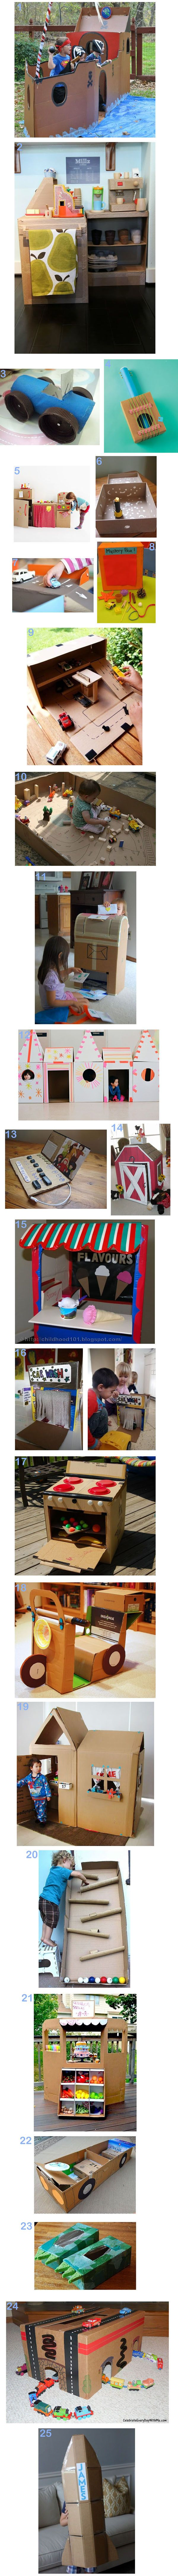 25 Cardboard Box Ideas